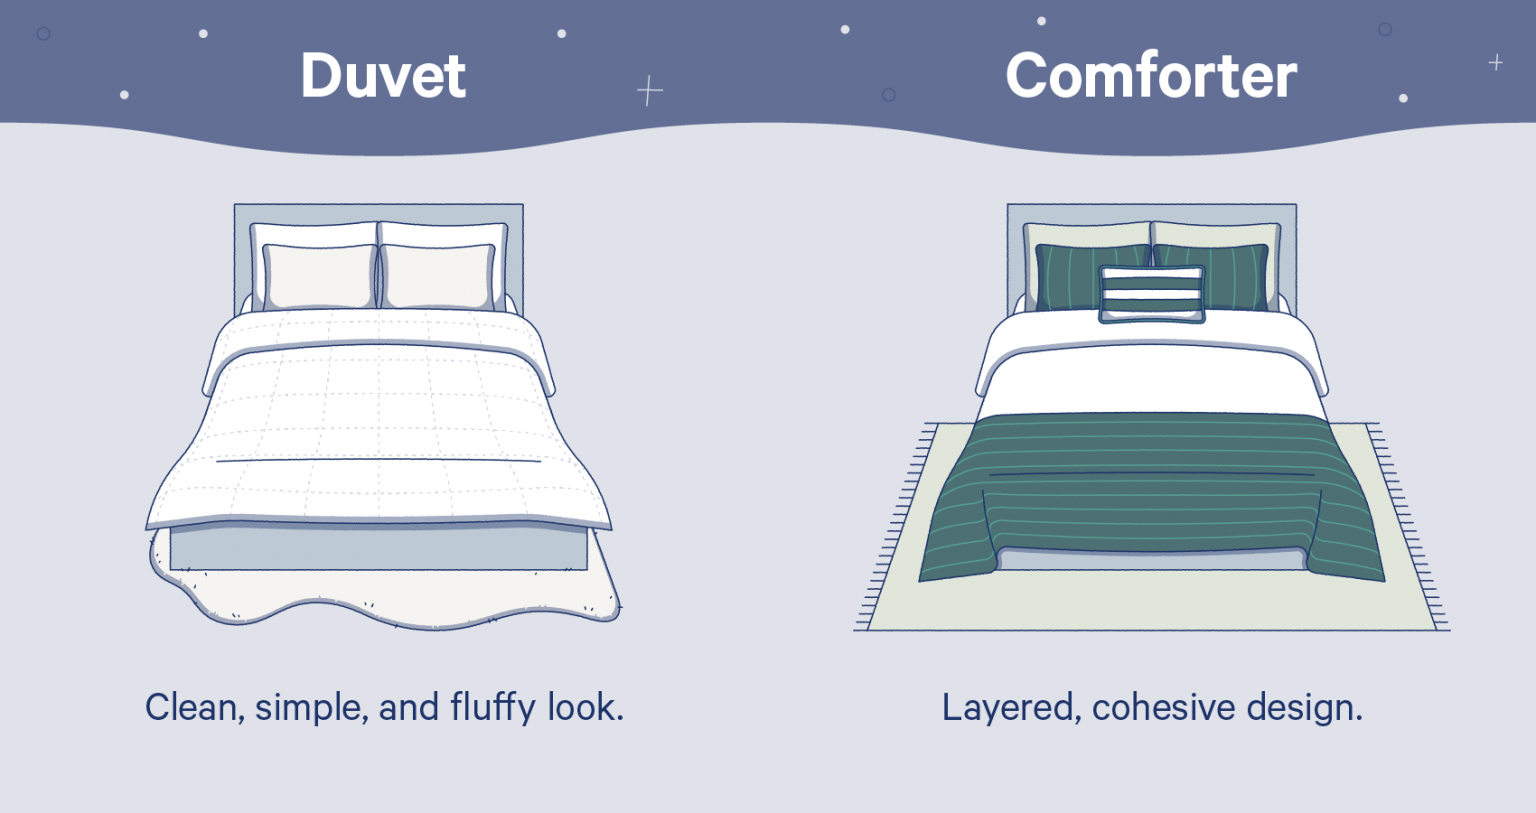 The main difference between a duvet and a comforter